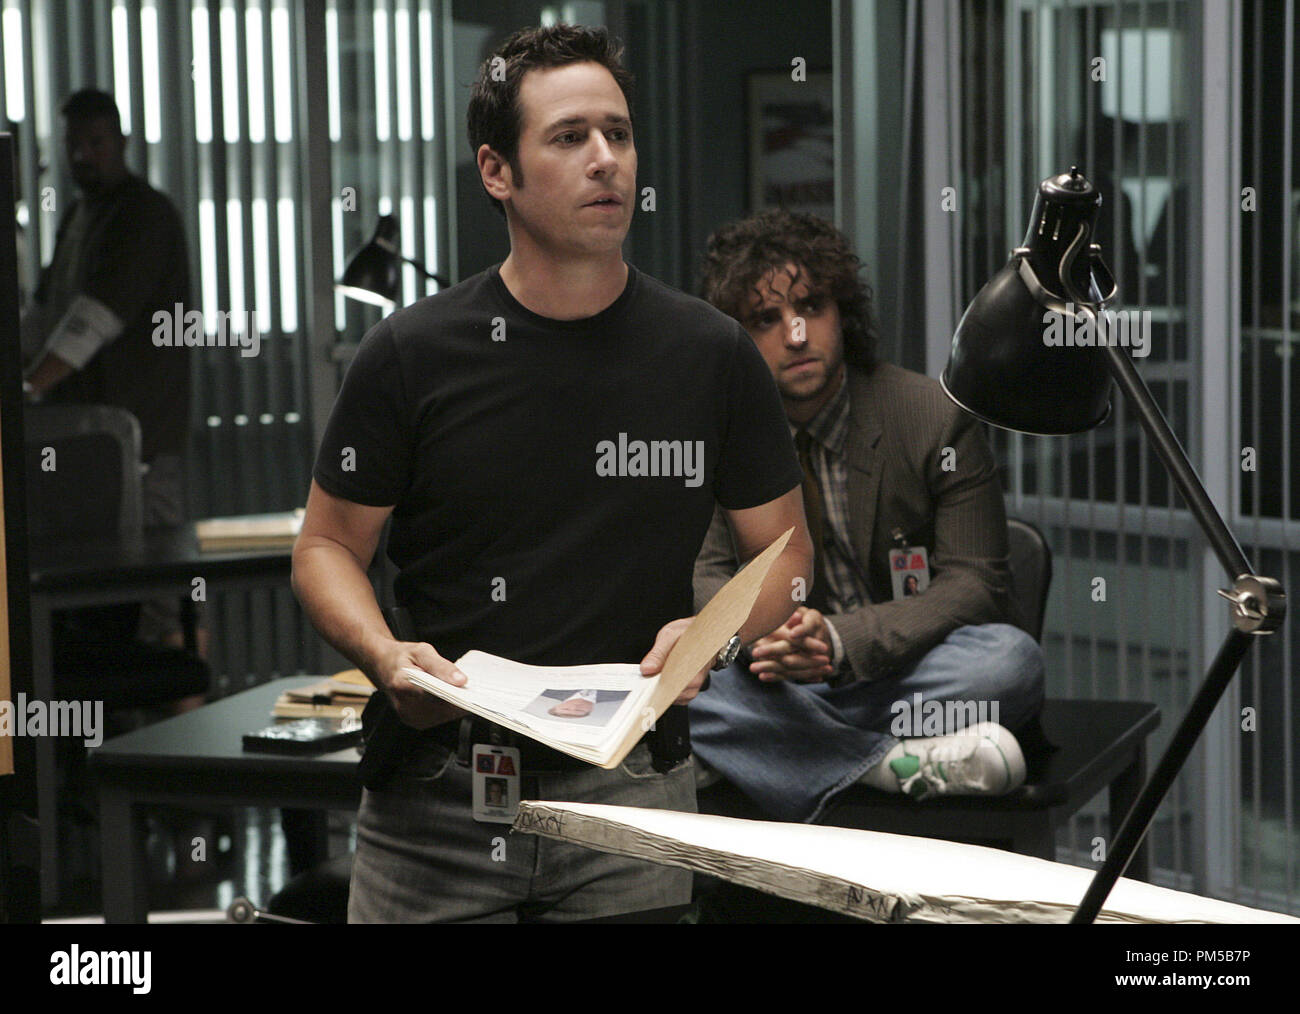 Film Still from 'Numb3rs' (Episode: Trust Metric) Rob Morrow, David Krumholtz 2007 Photo Credit: Robert Voets       File Reference # 30738491THA  For Editorial Use Only -  All Rights Reserved - Stock Image